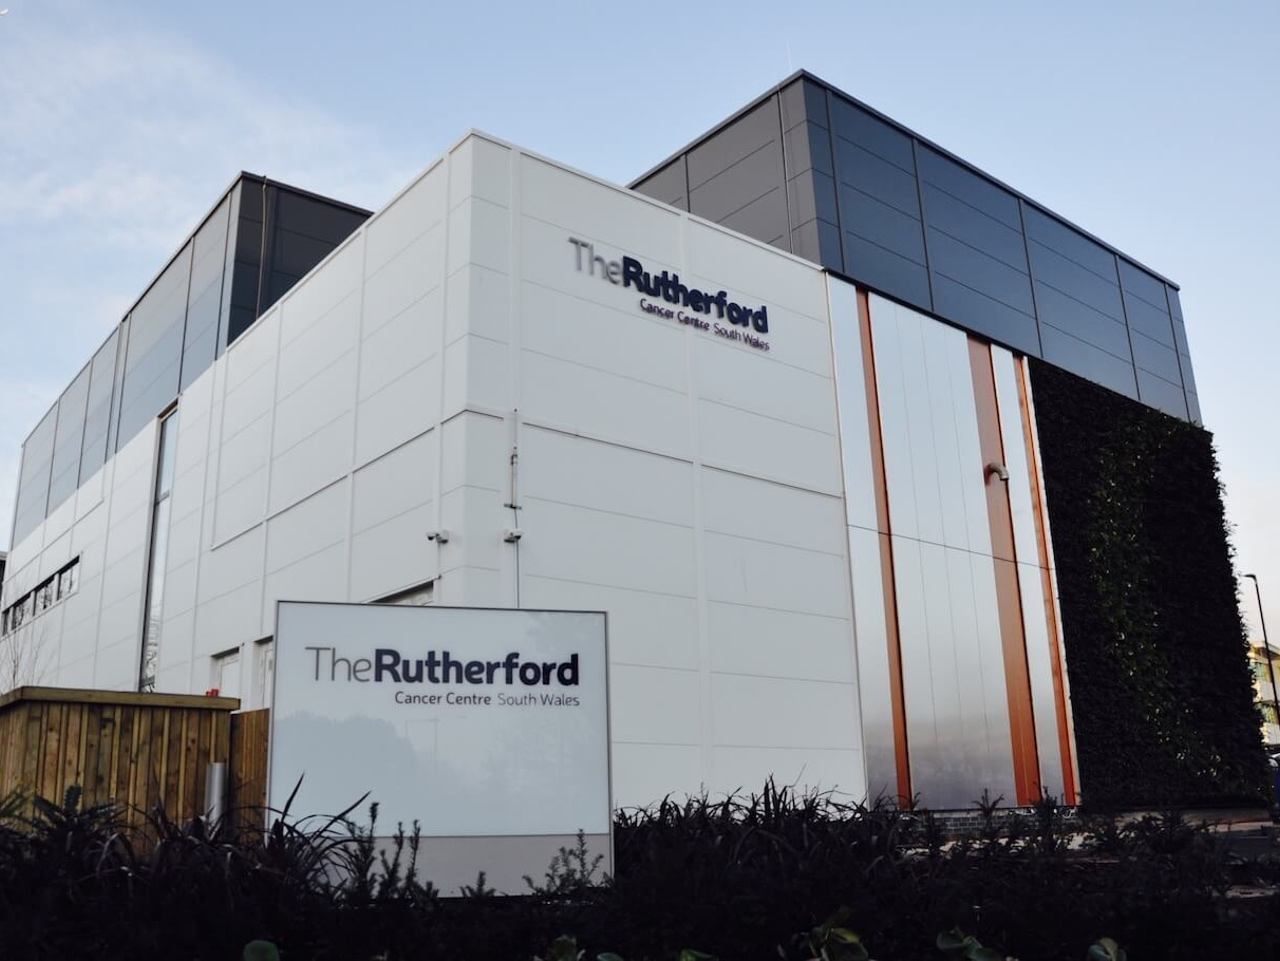 External signage at Rutherford Cancer Centres